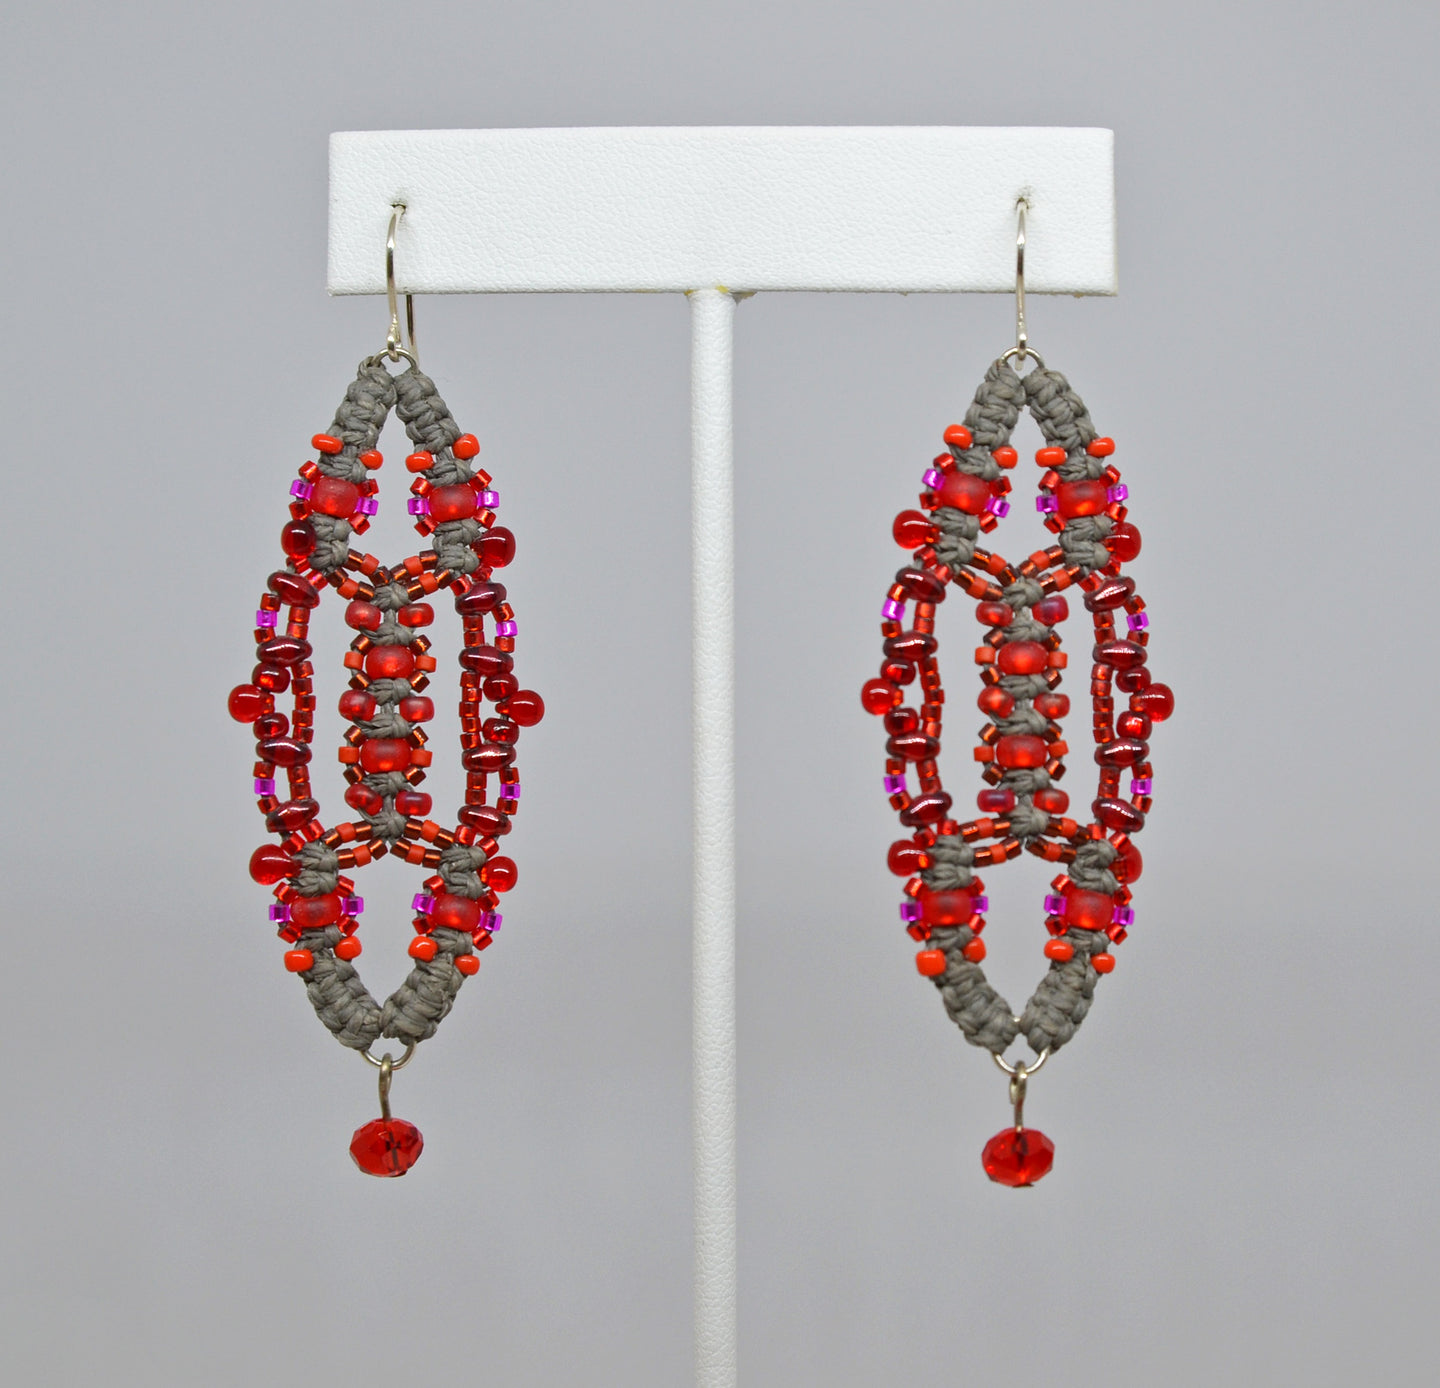 Beaded Earrings (red/gray) by Renate Kasper